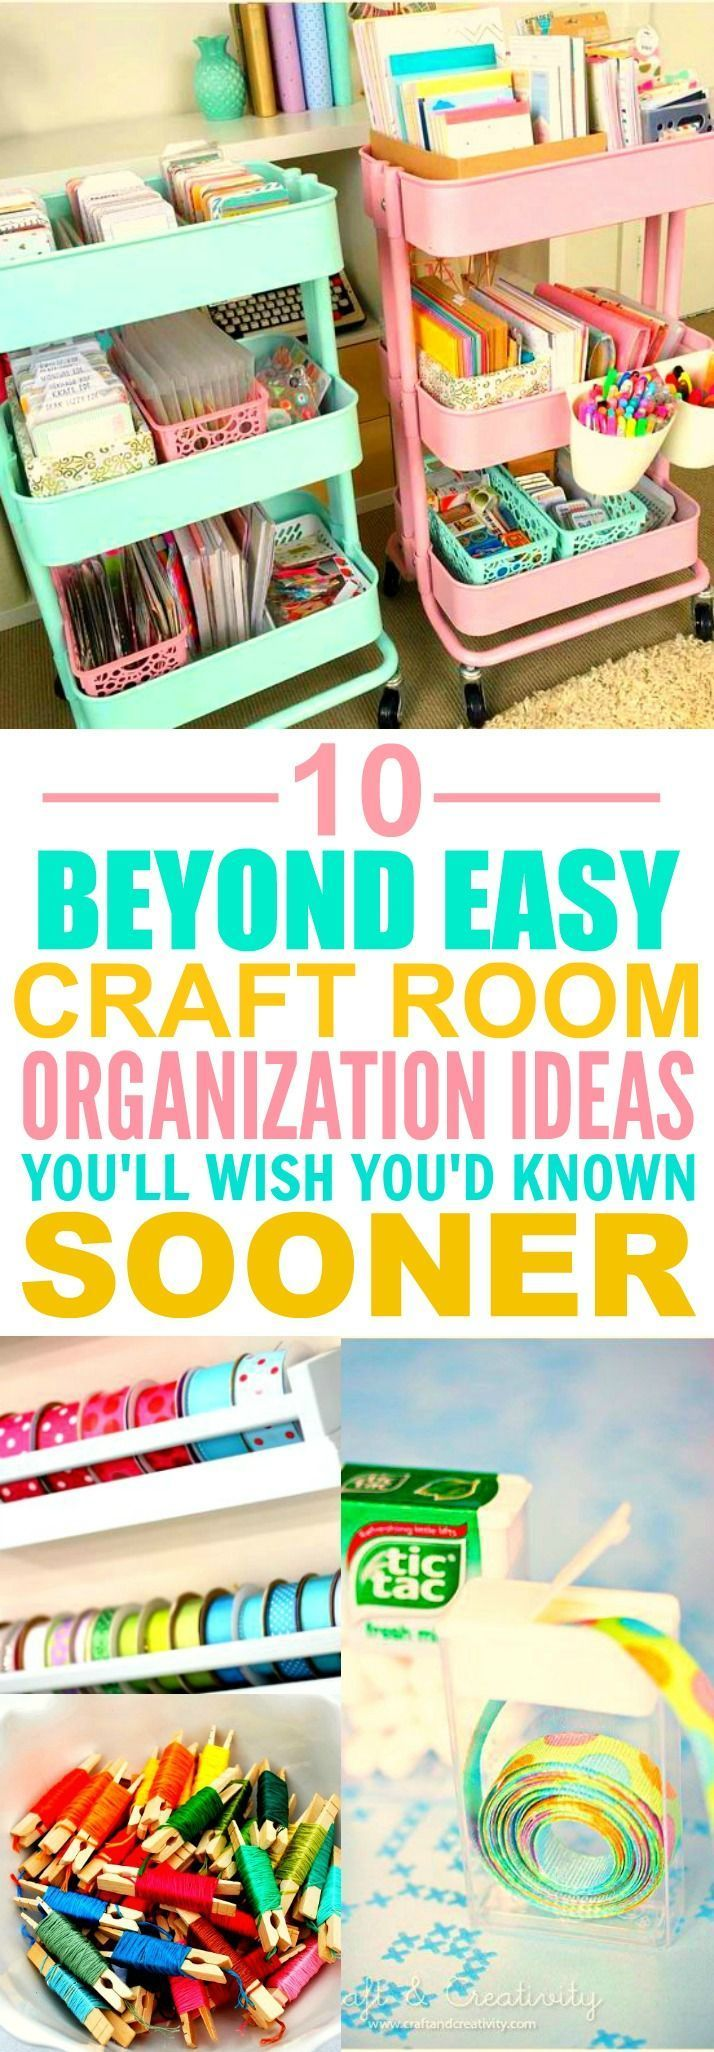 743 Best Organizing Images On Pinterest Getting